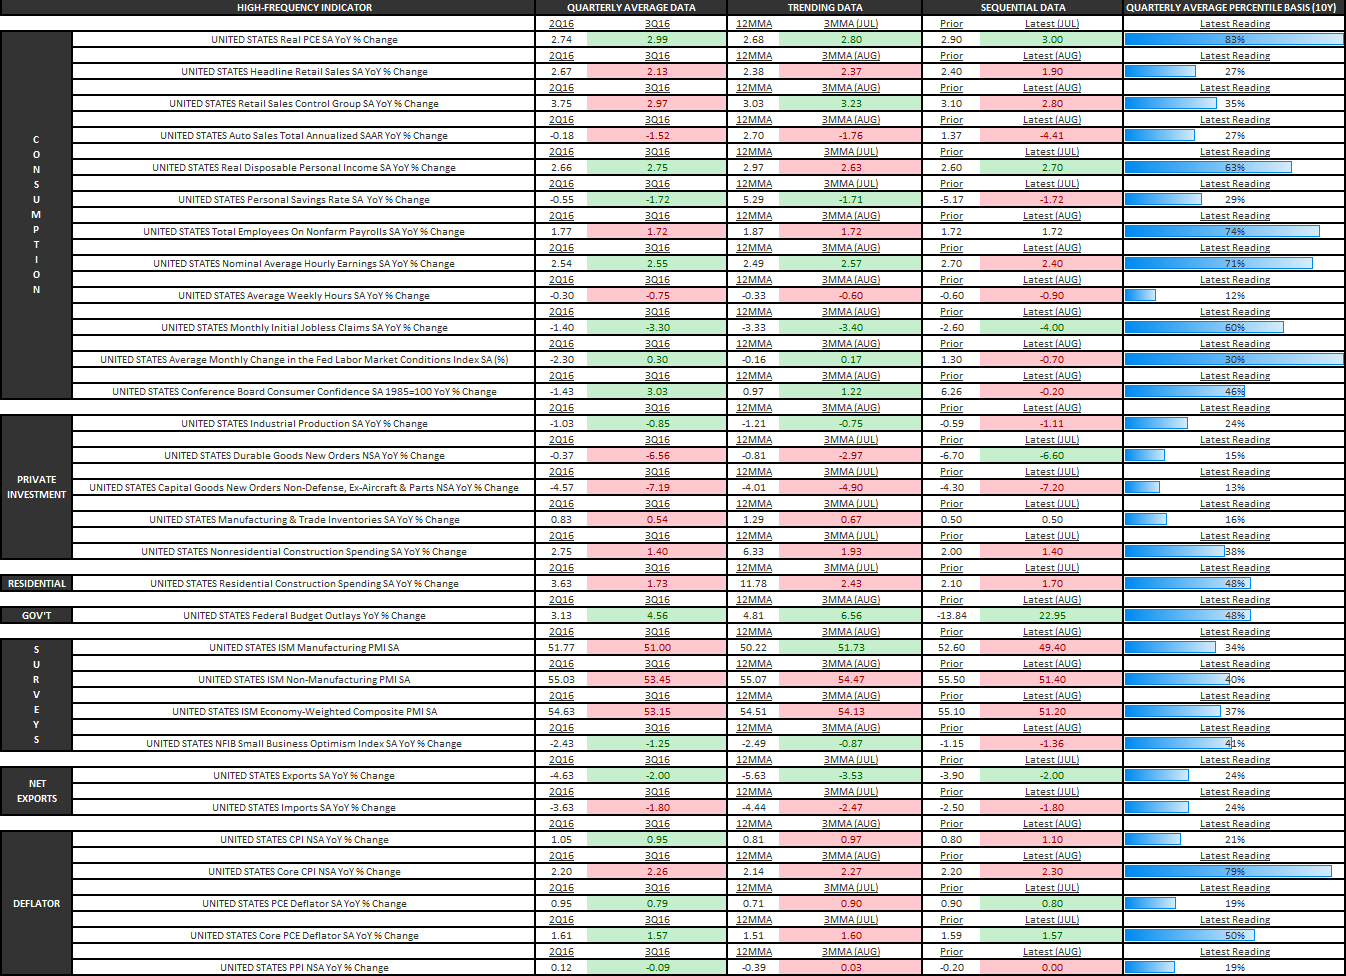 Hawkish Doves and Dovish Hawks: Back to the Narrative Machine If You're Short Duration  - U.S. Economic Summary Table